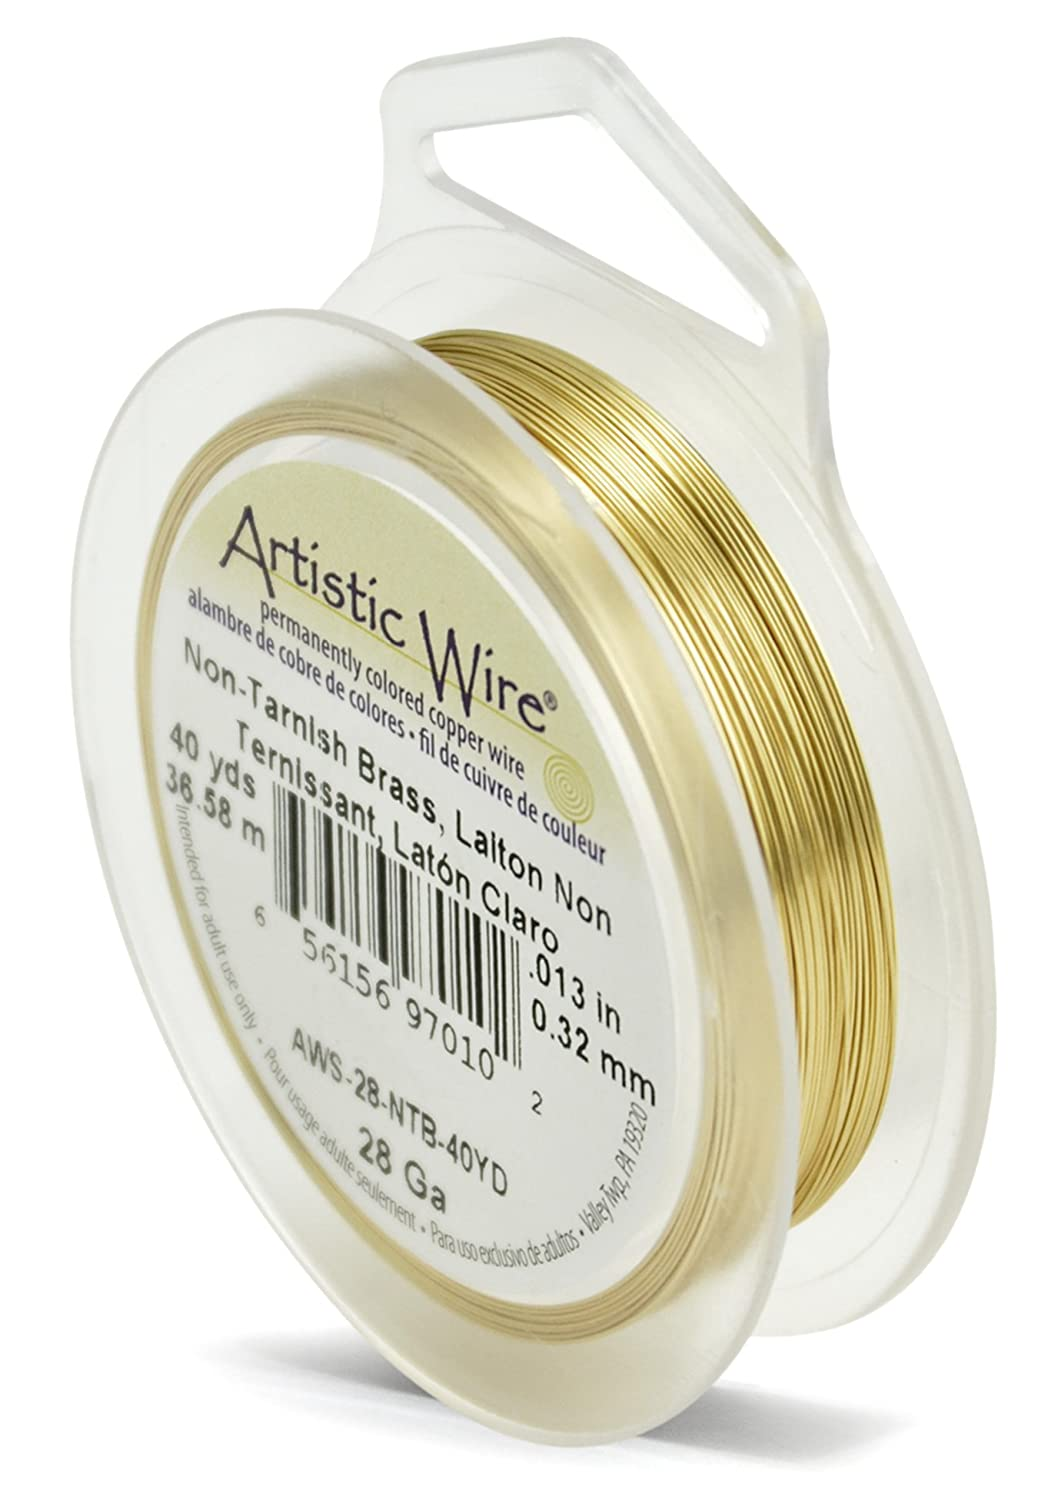 Amazon artistic wire 28 gauge non tarnish brass wire 40 yards greentooth Choice Image